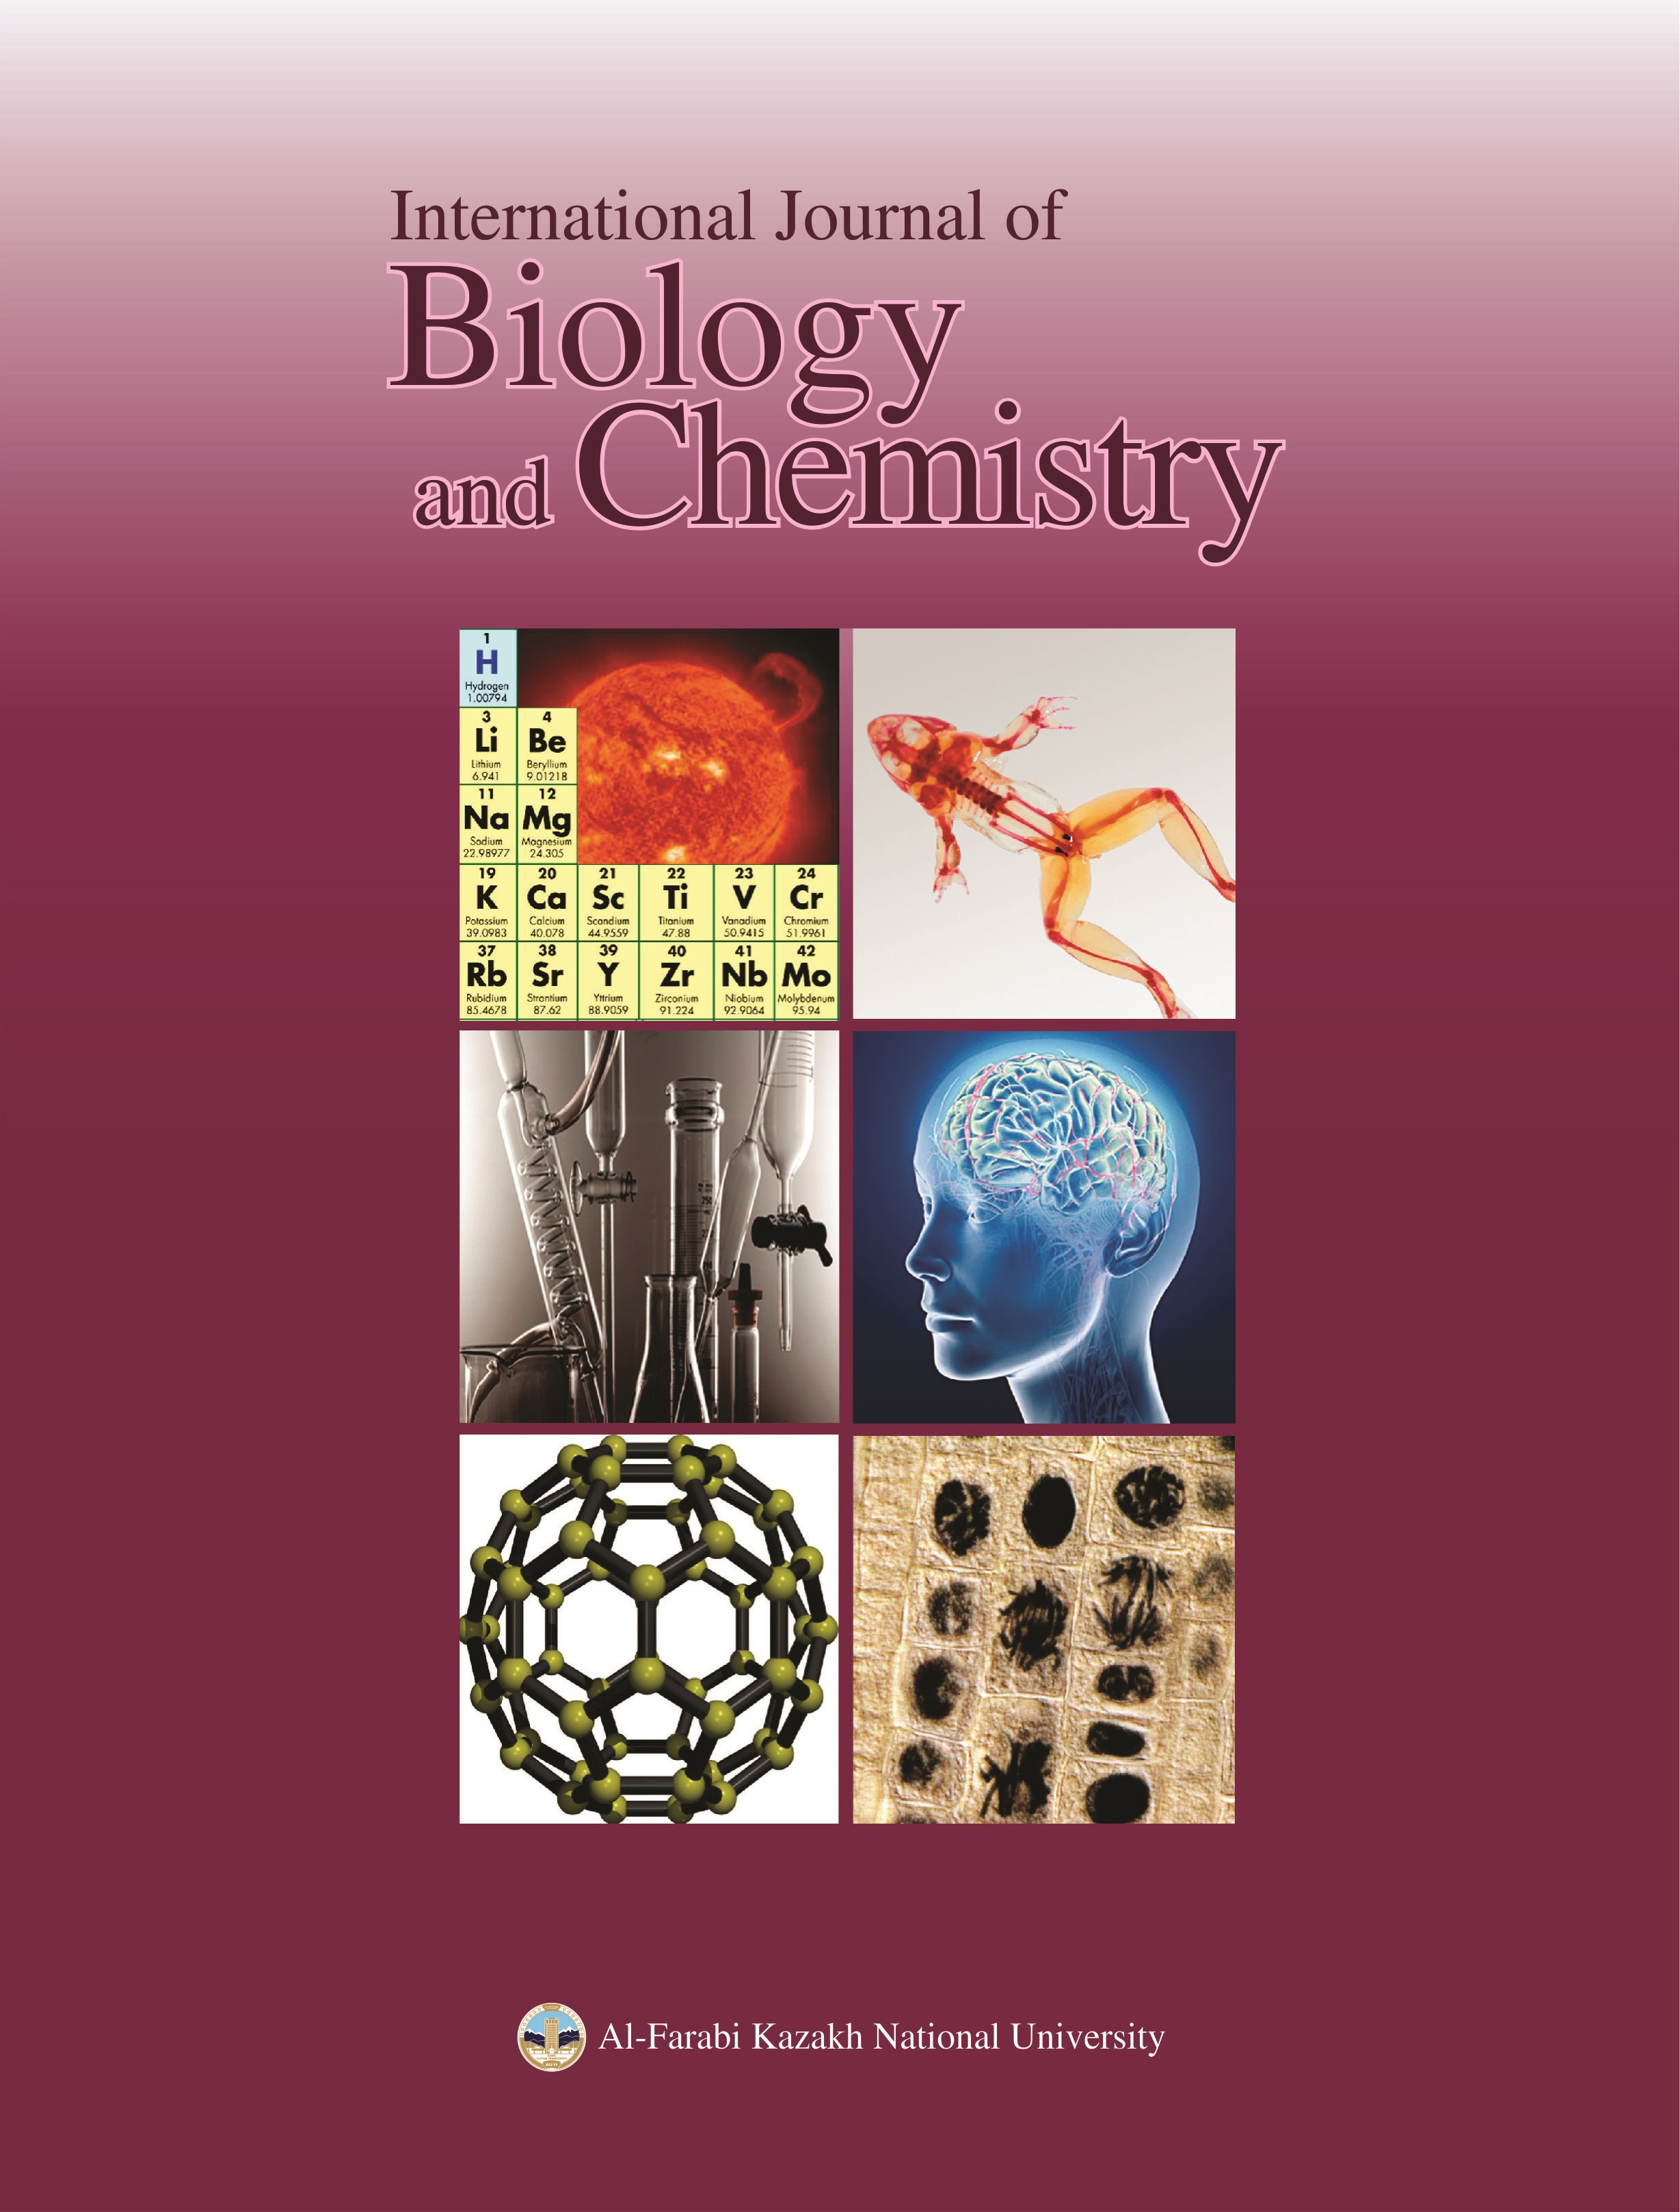 View Vol. 8 No. 2 (2015): International Journal of Biology and Chemistry